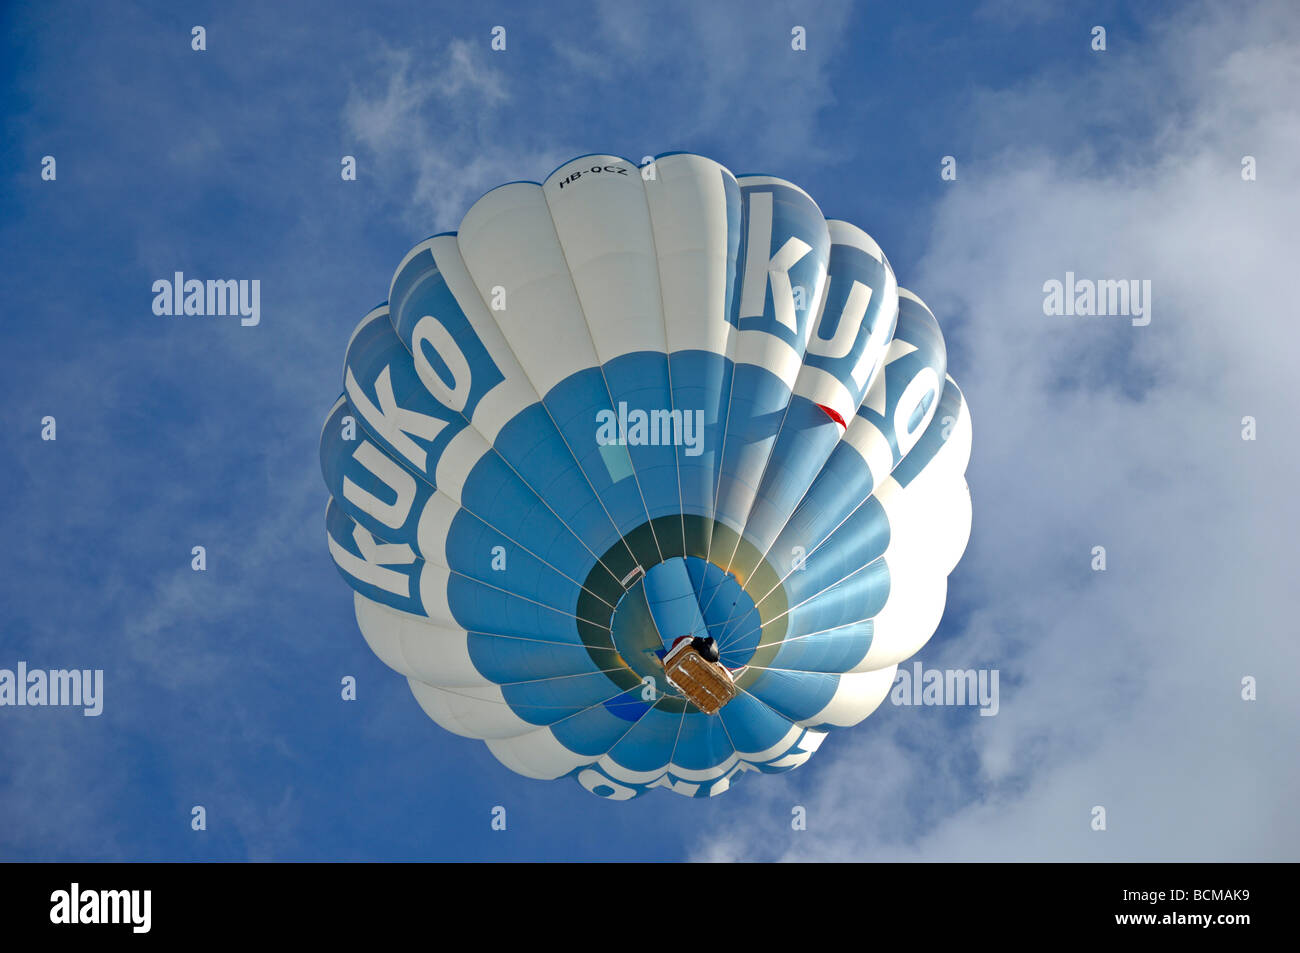 Kuko balloon 2006 Chateau d Oex Hot Air Balloon Festival Switzerland Europe Stock Photo